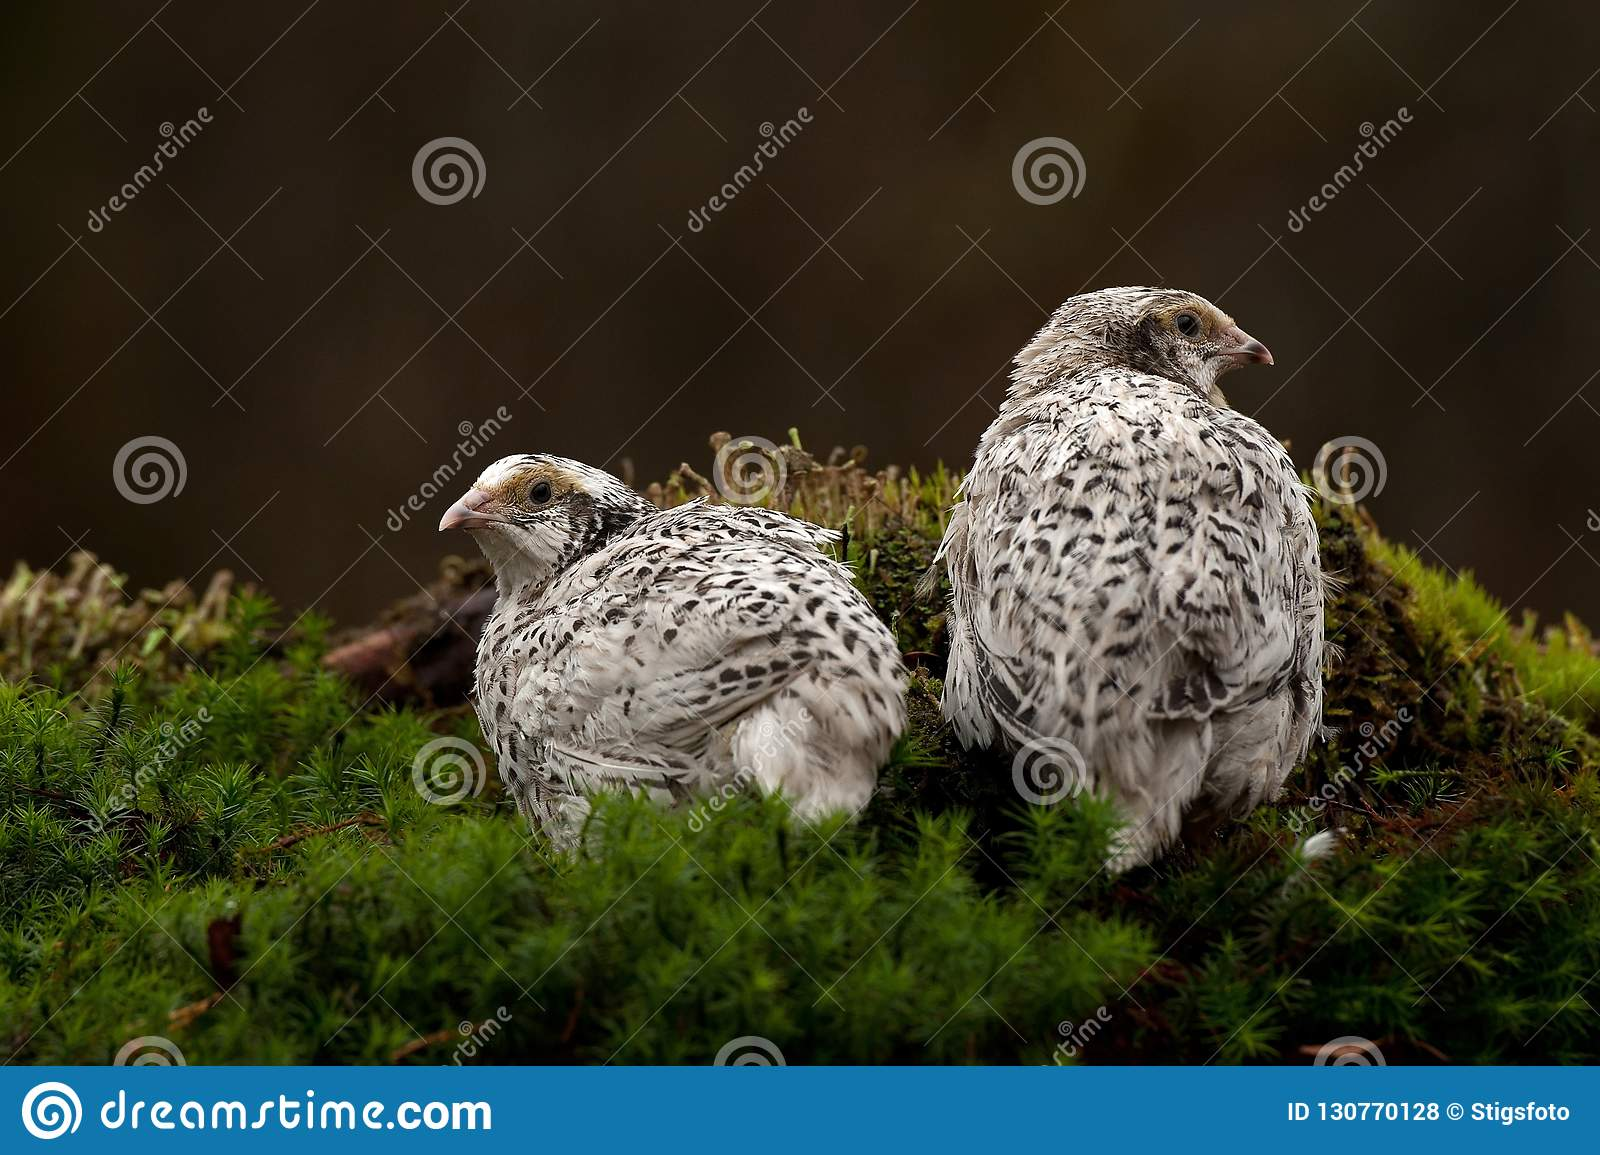 Two quail, Coturnix japonica.....photographed in nature.